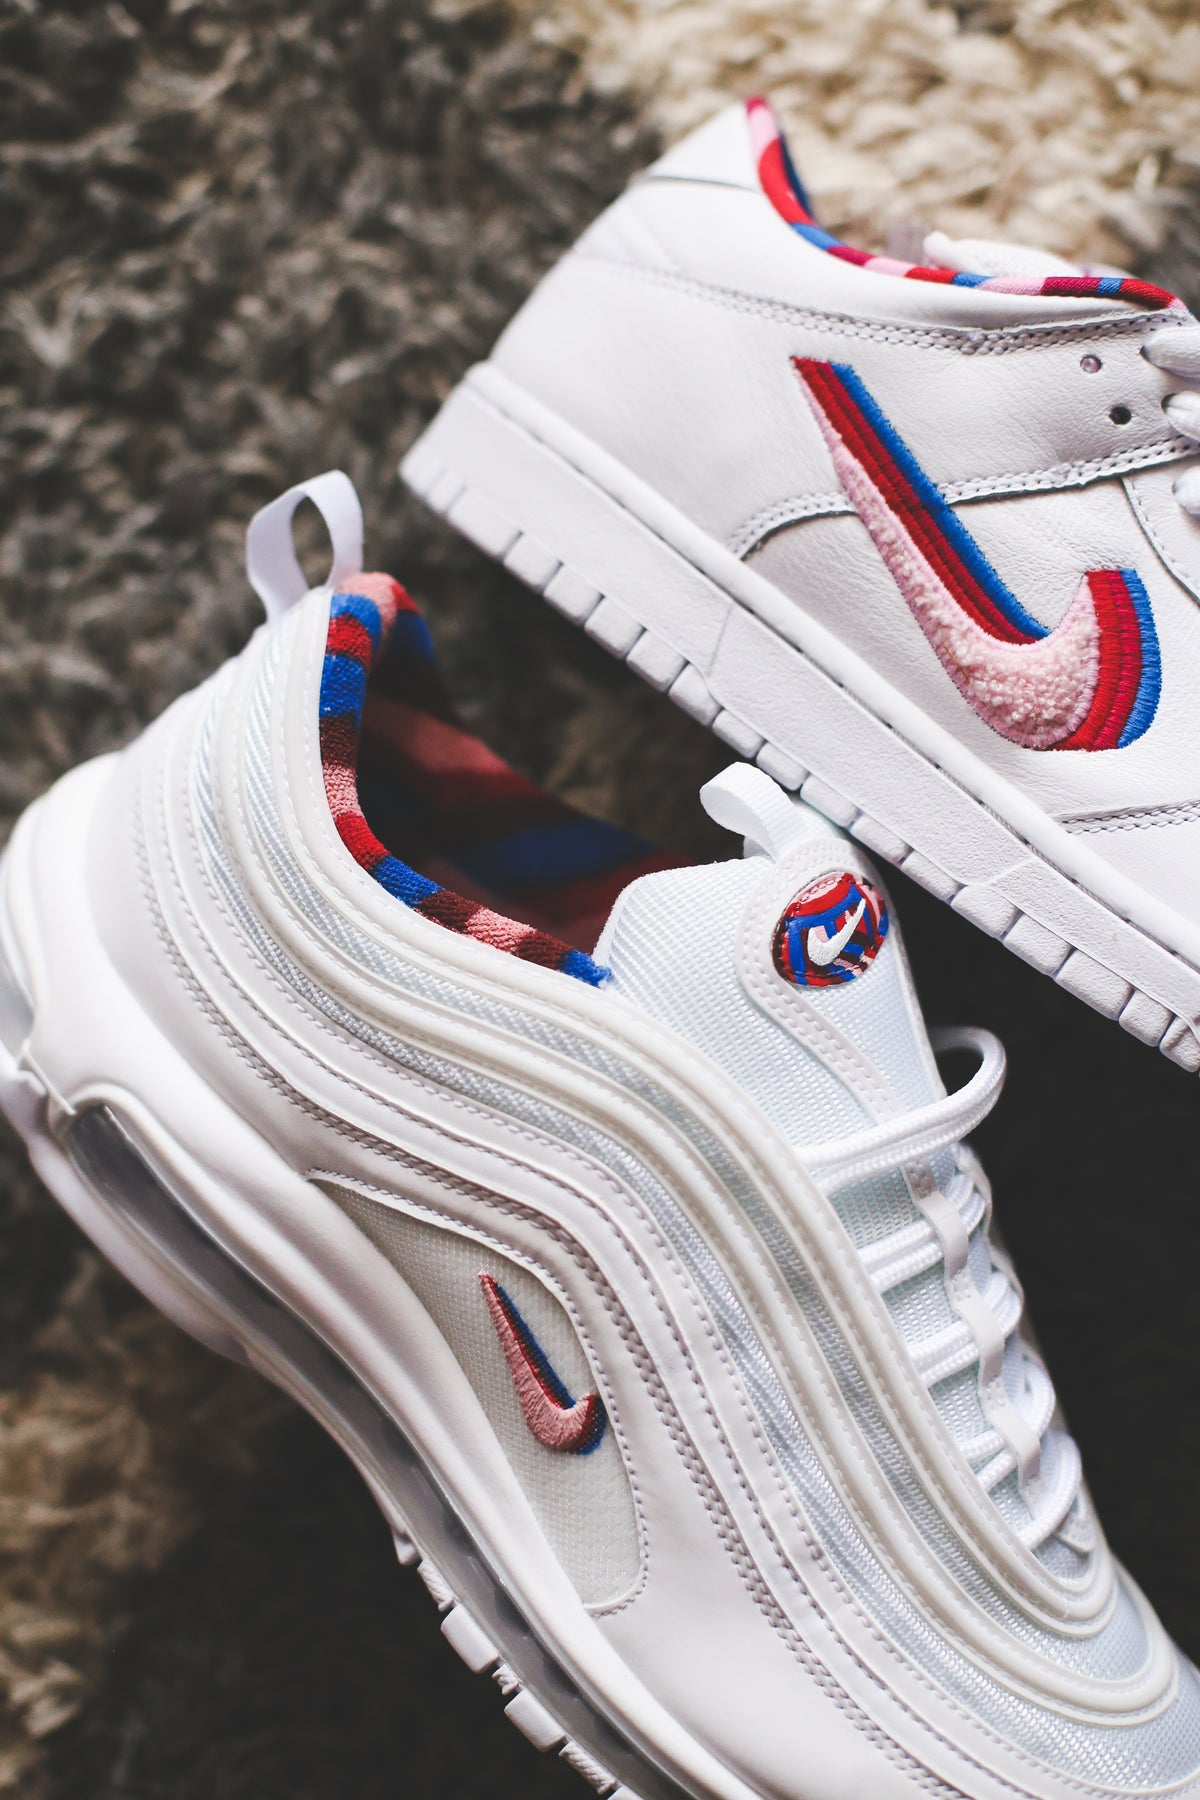 Image of Parra air max 97